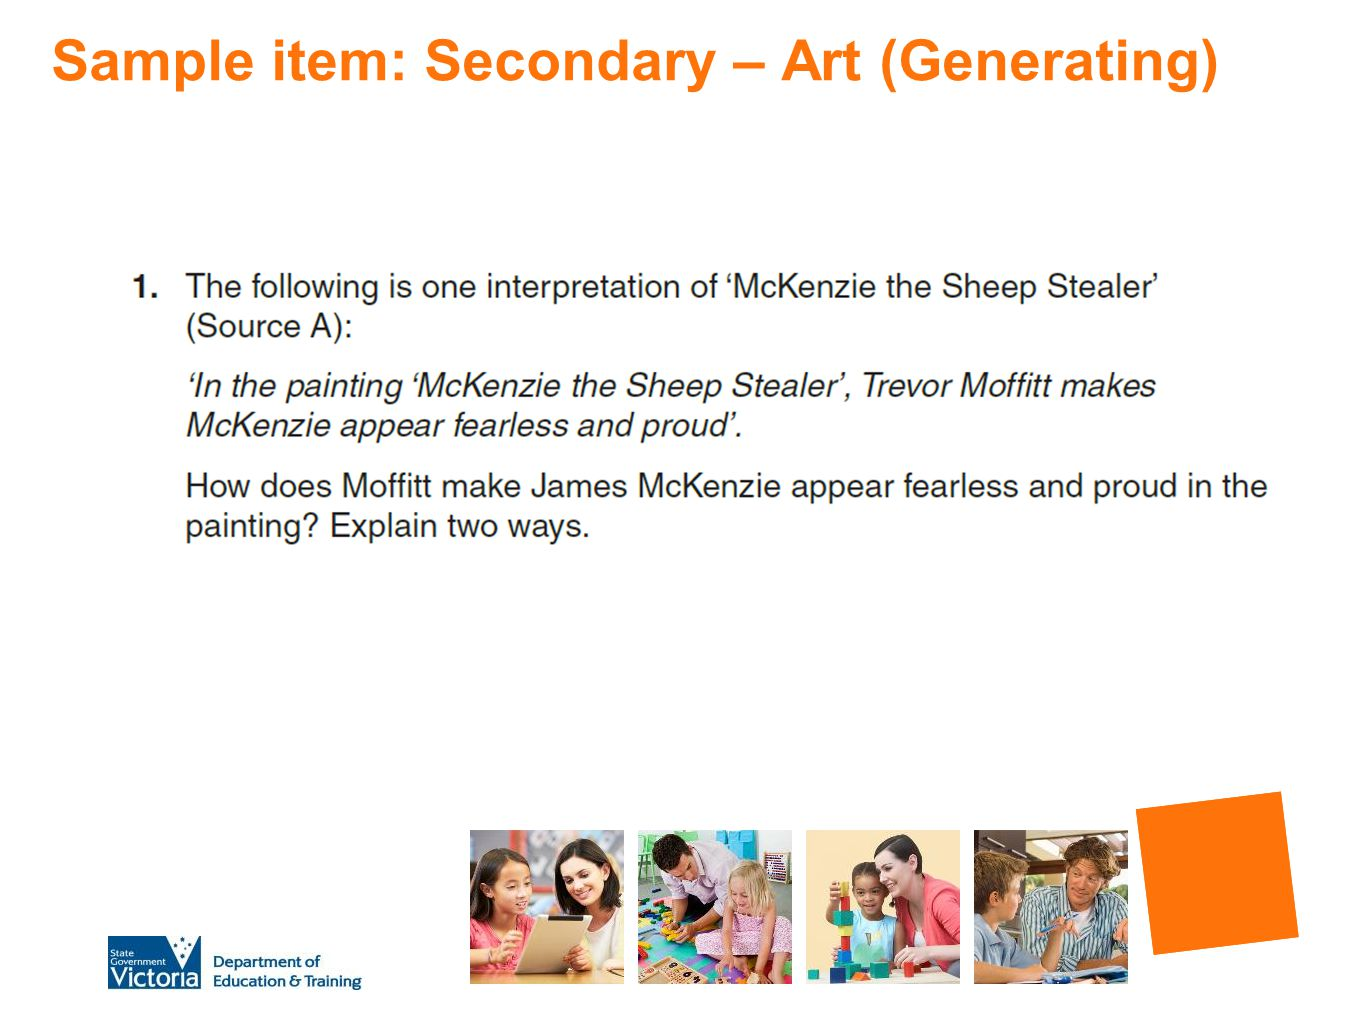 Sample item: Secondary – Art (Generating)